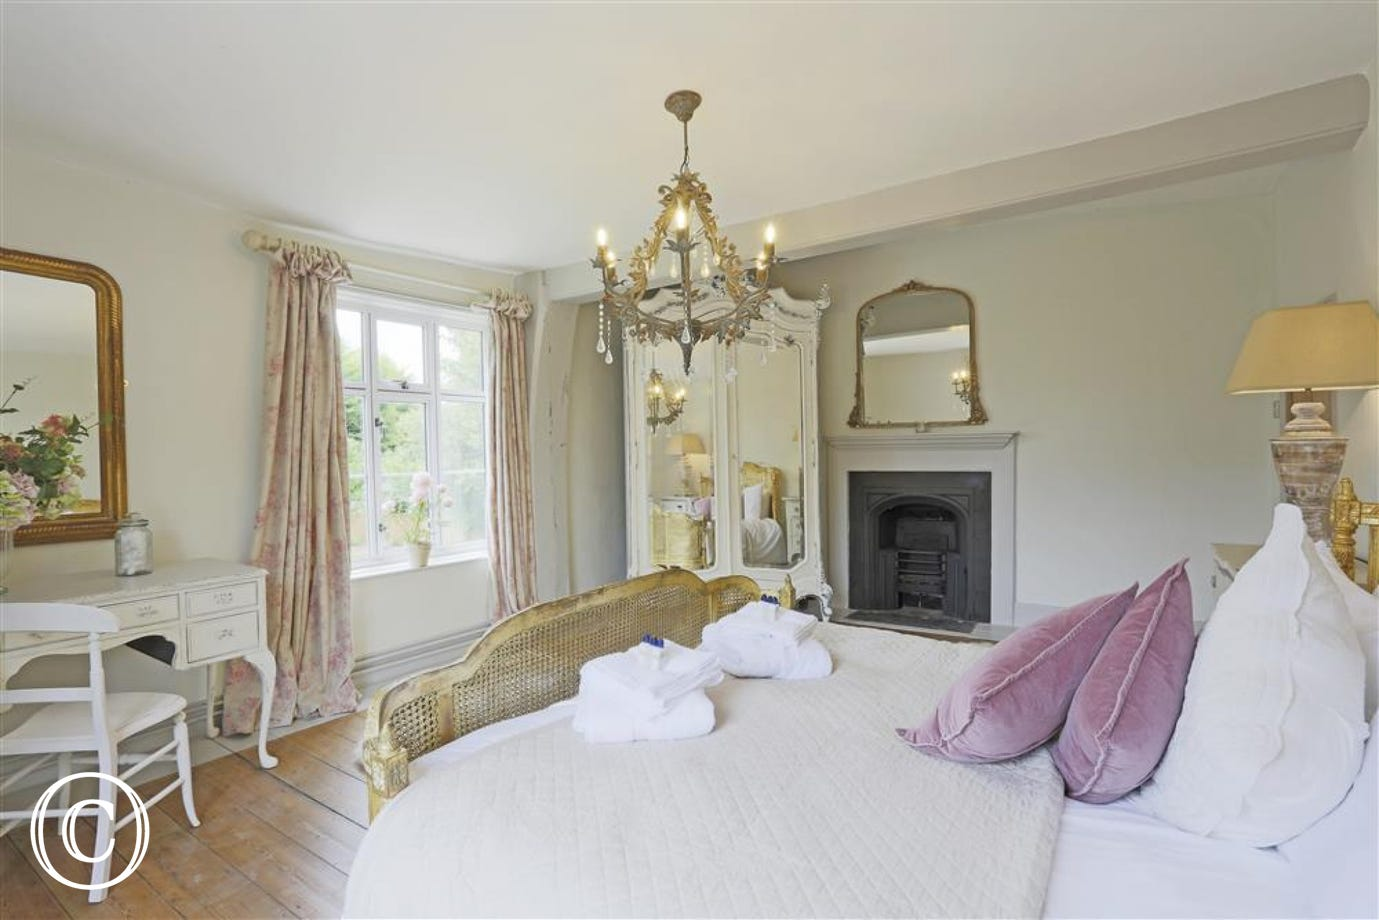 The French Master Bedroom - View 2